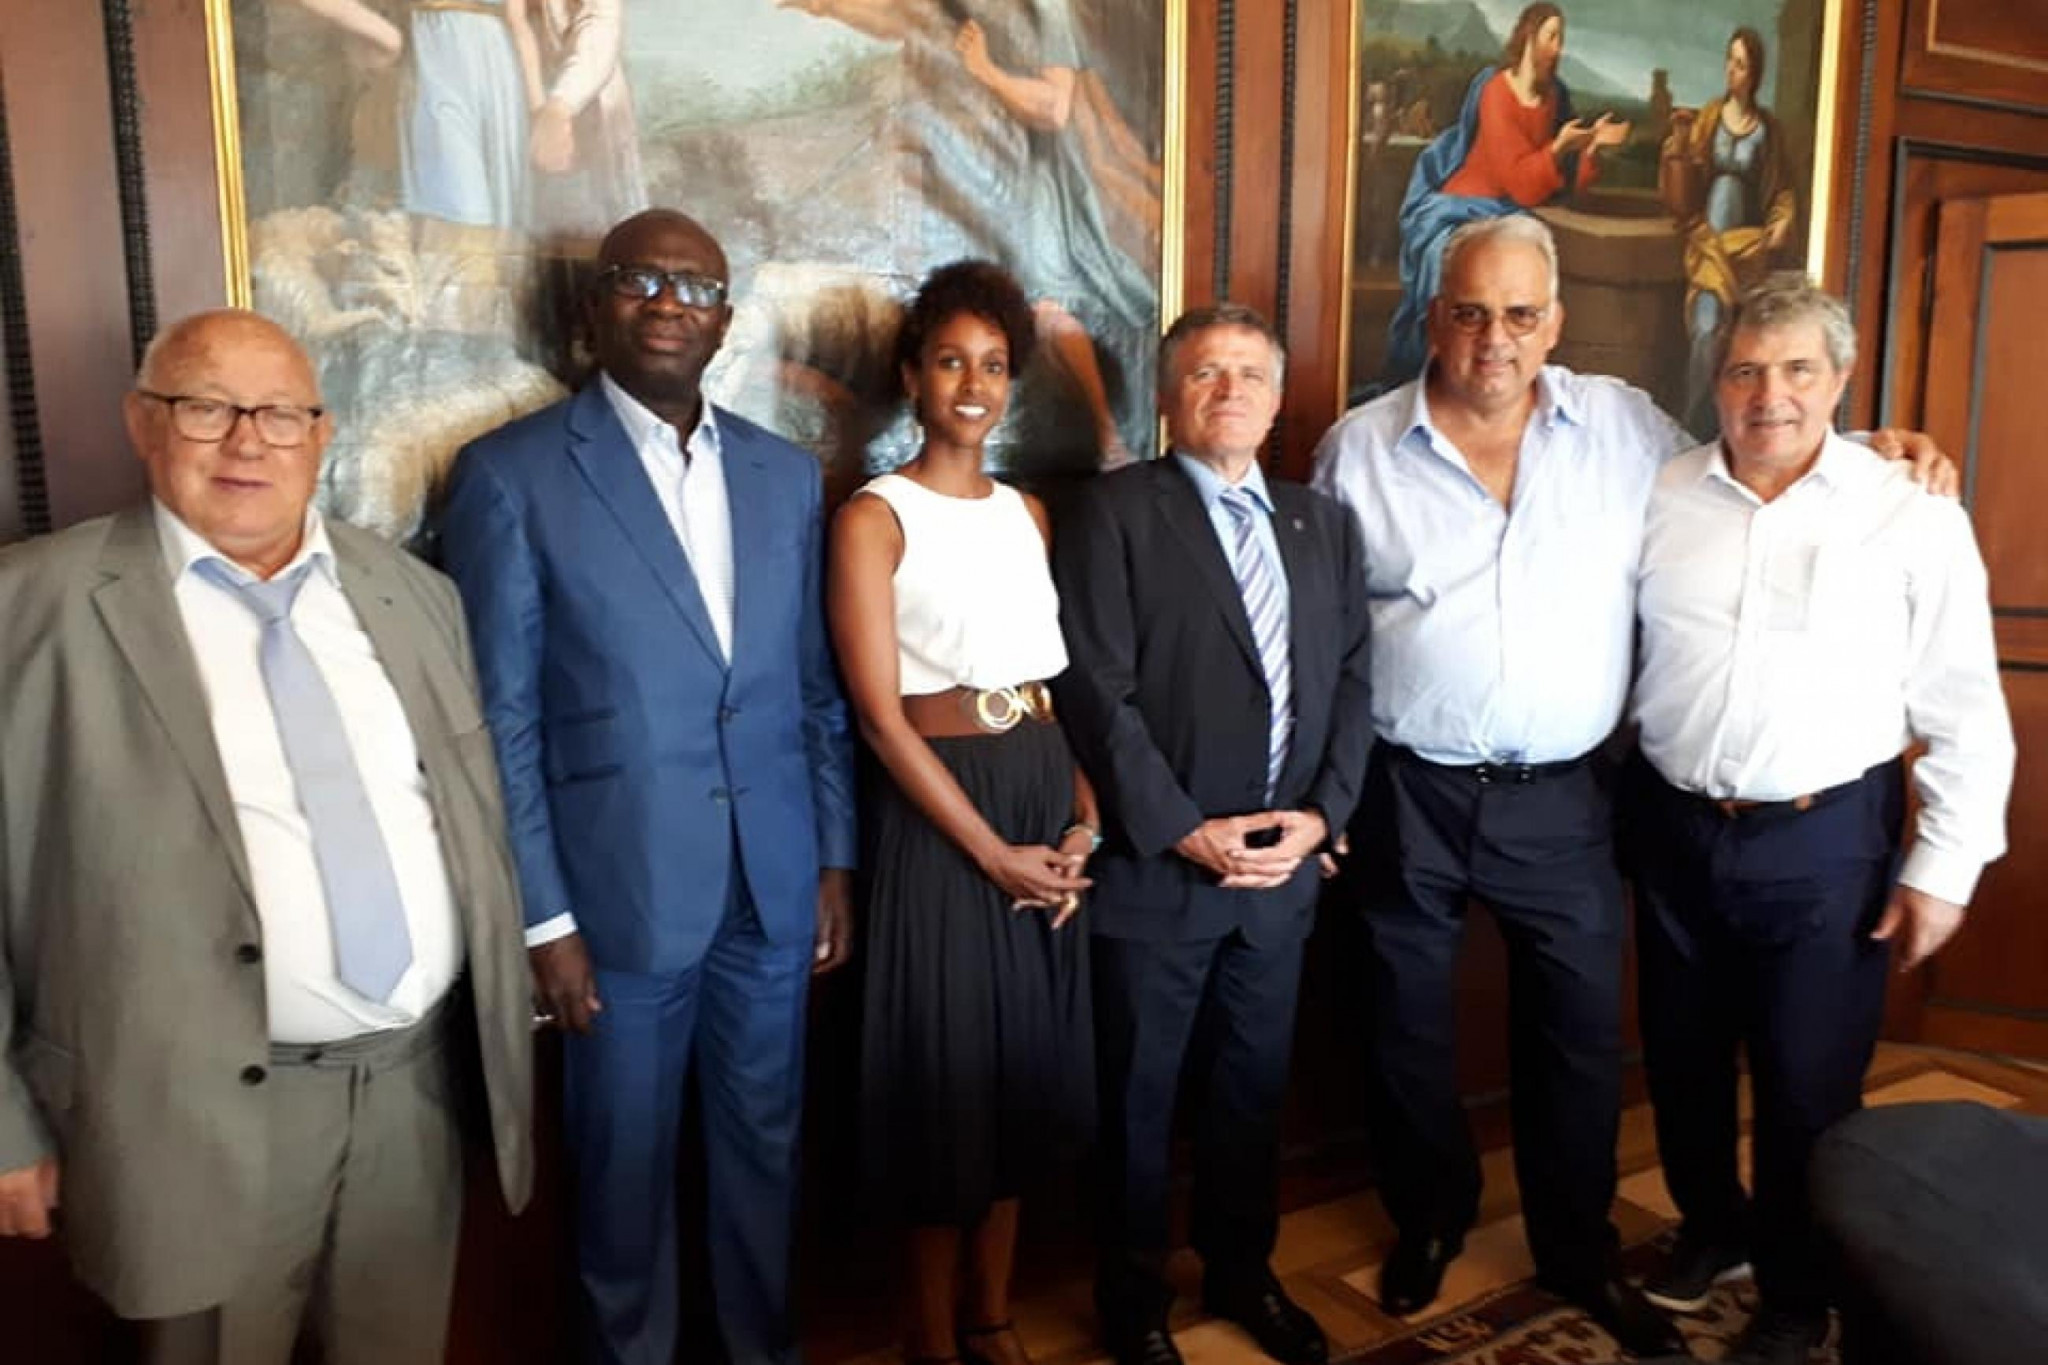 UWW Francophone Committee meet to discuss wrestling development in Africa